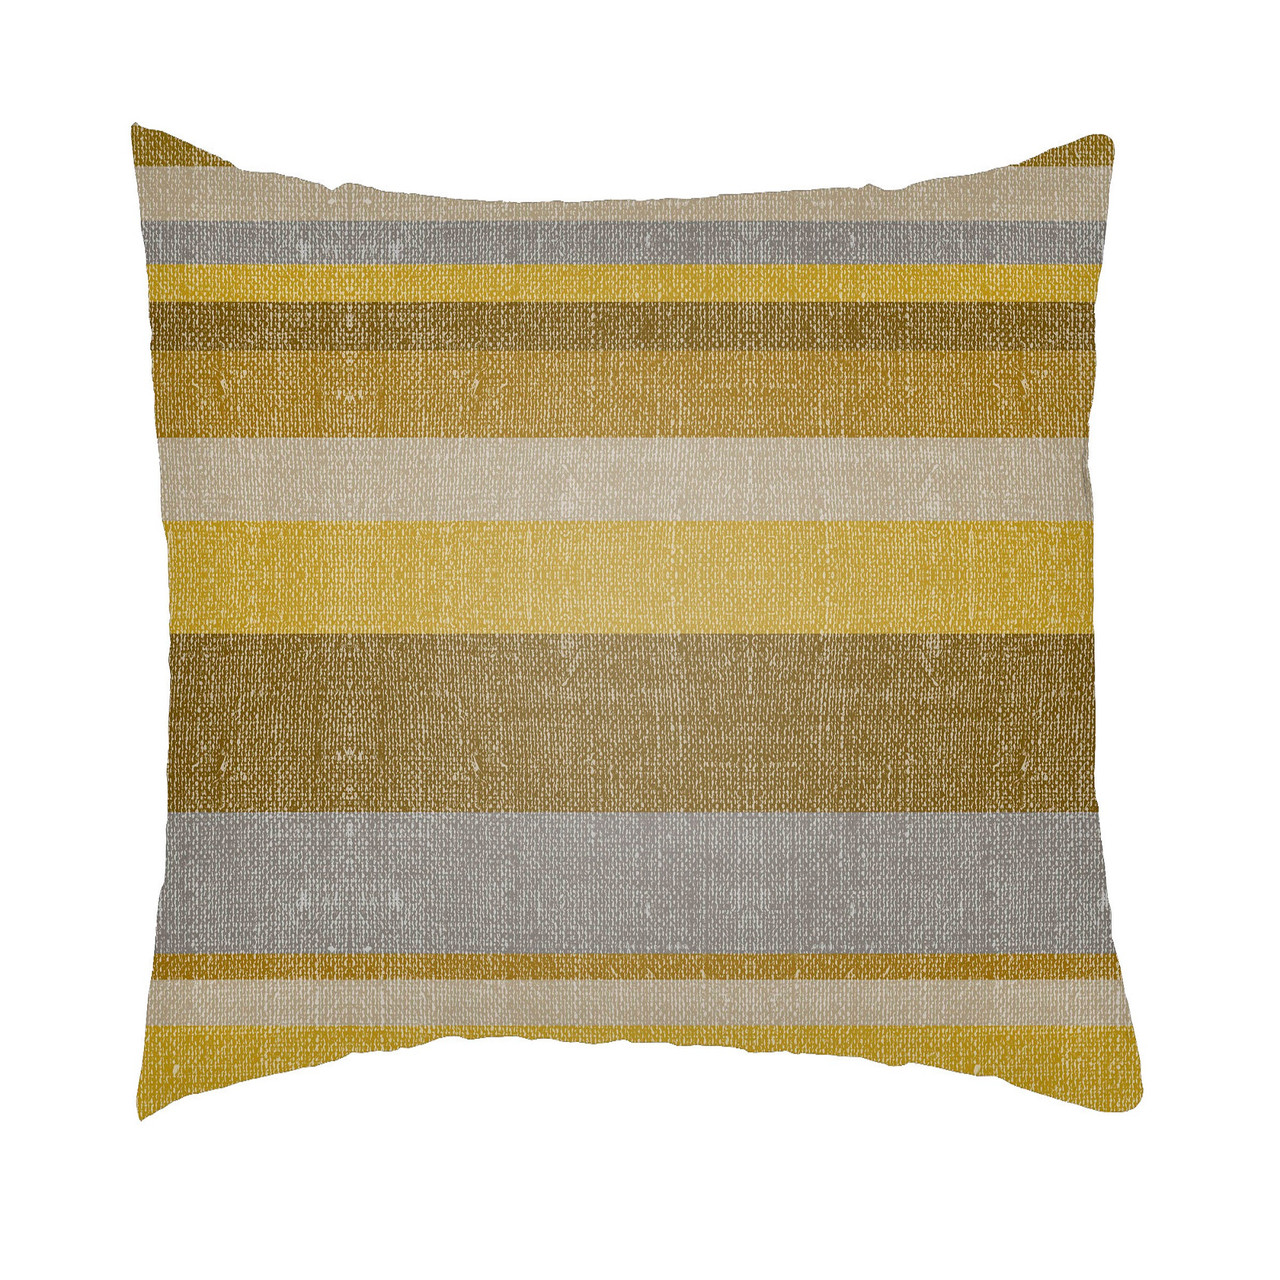 24 Mustard Yellow Gray Striped Rectangular Throw Pillow Cover Christmas Central